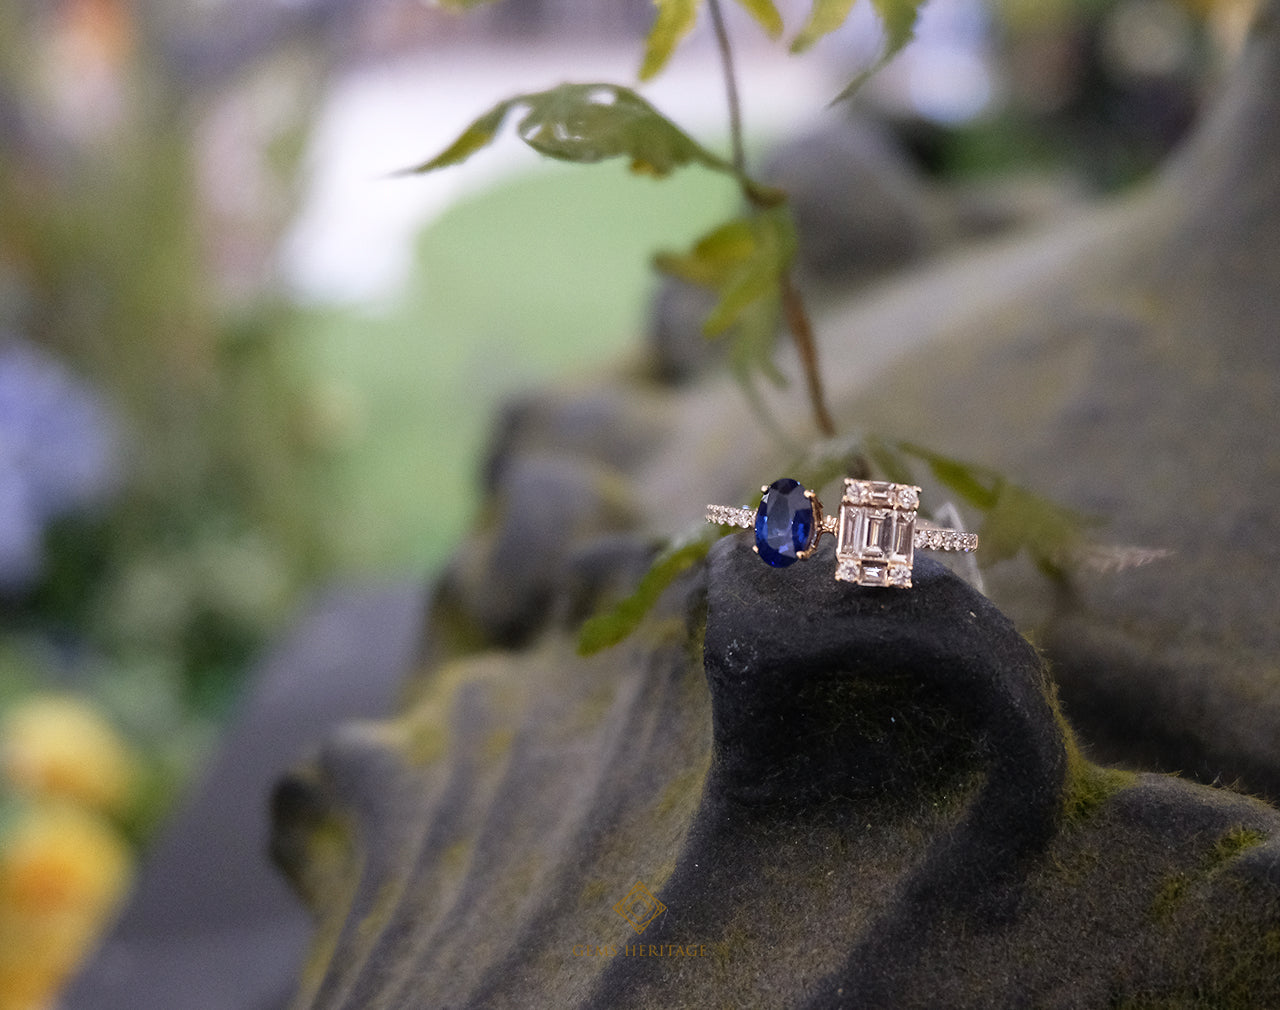 Blue sapphire and emerald cut illusion ring